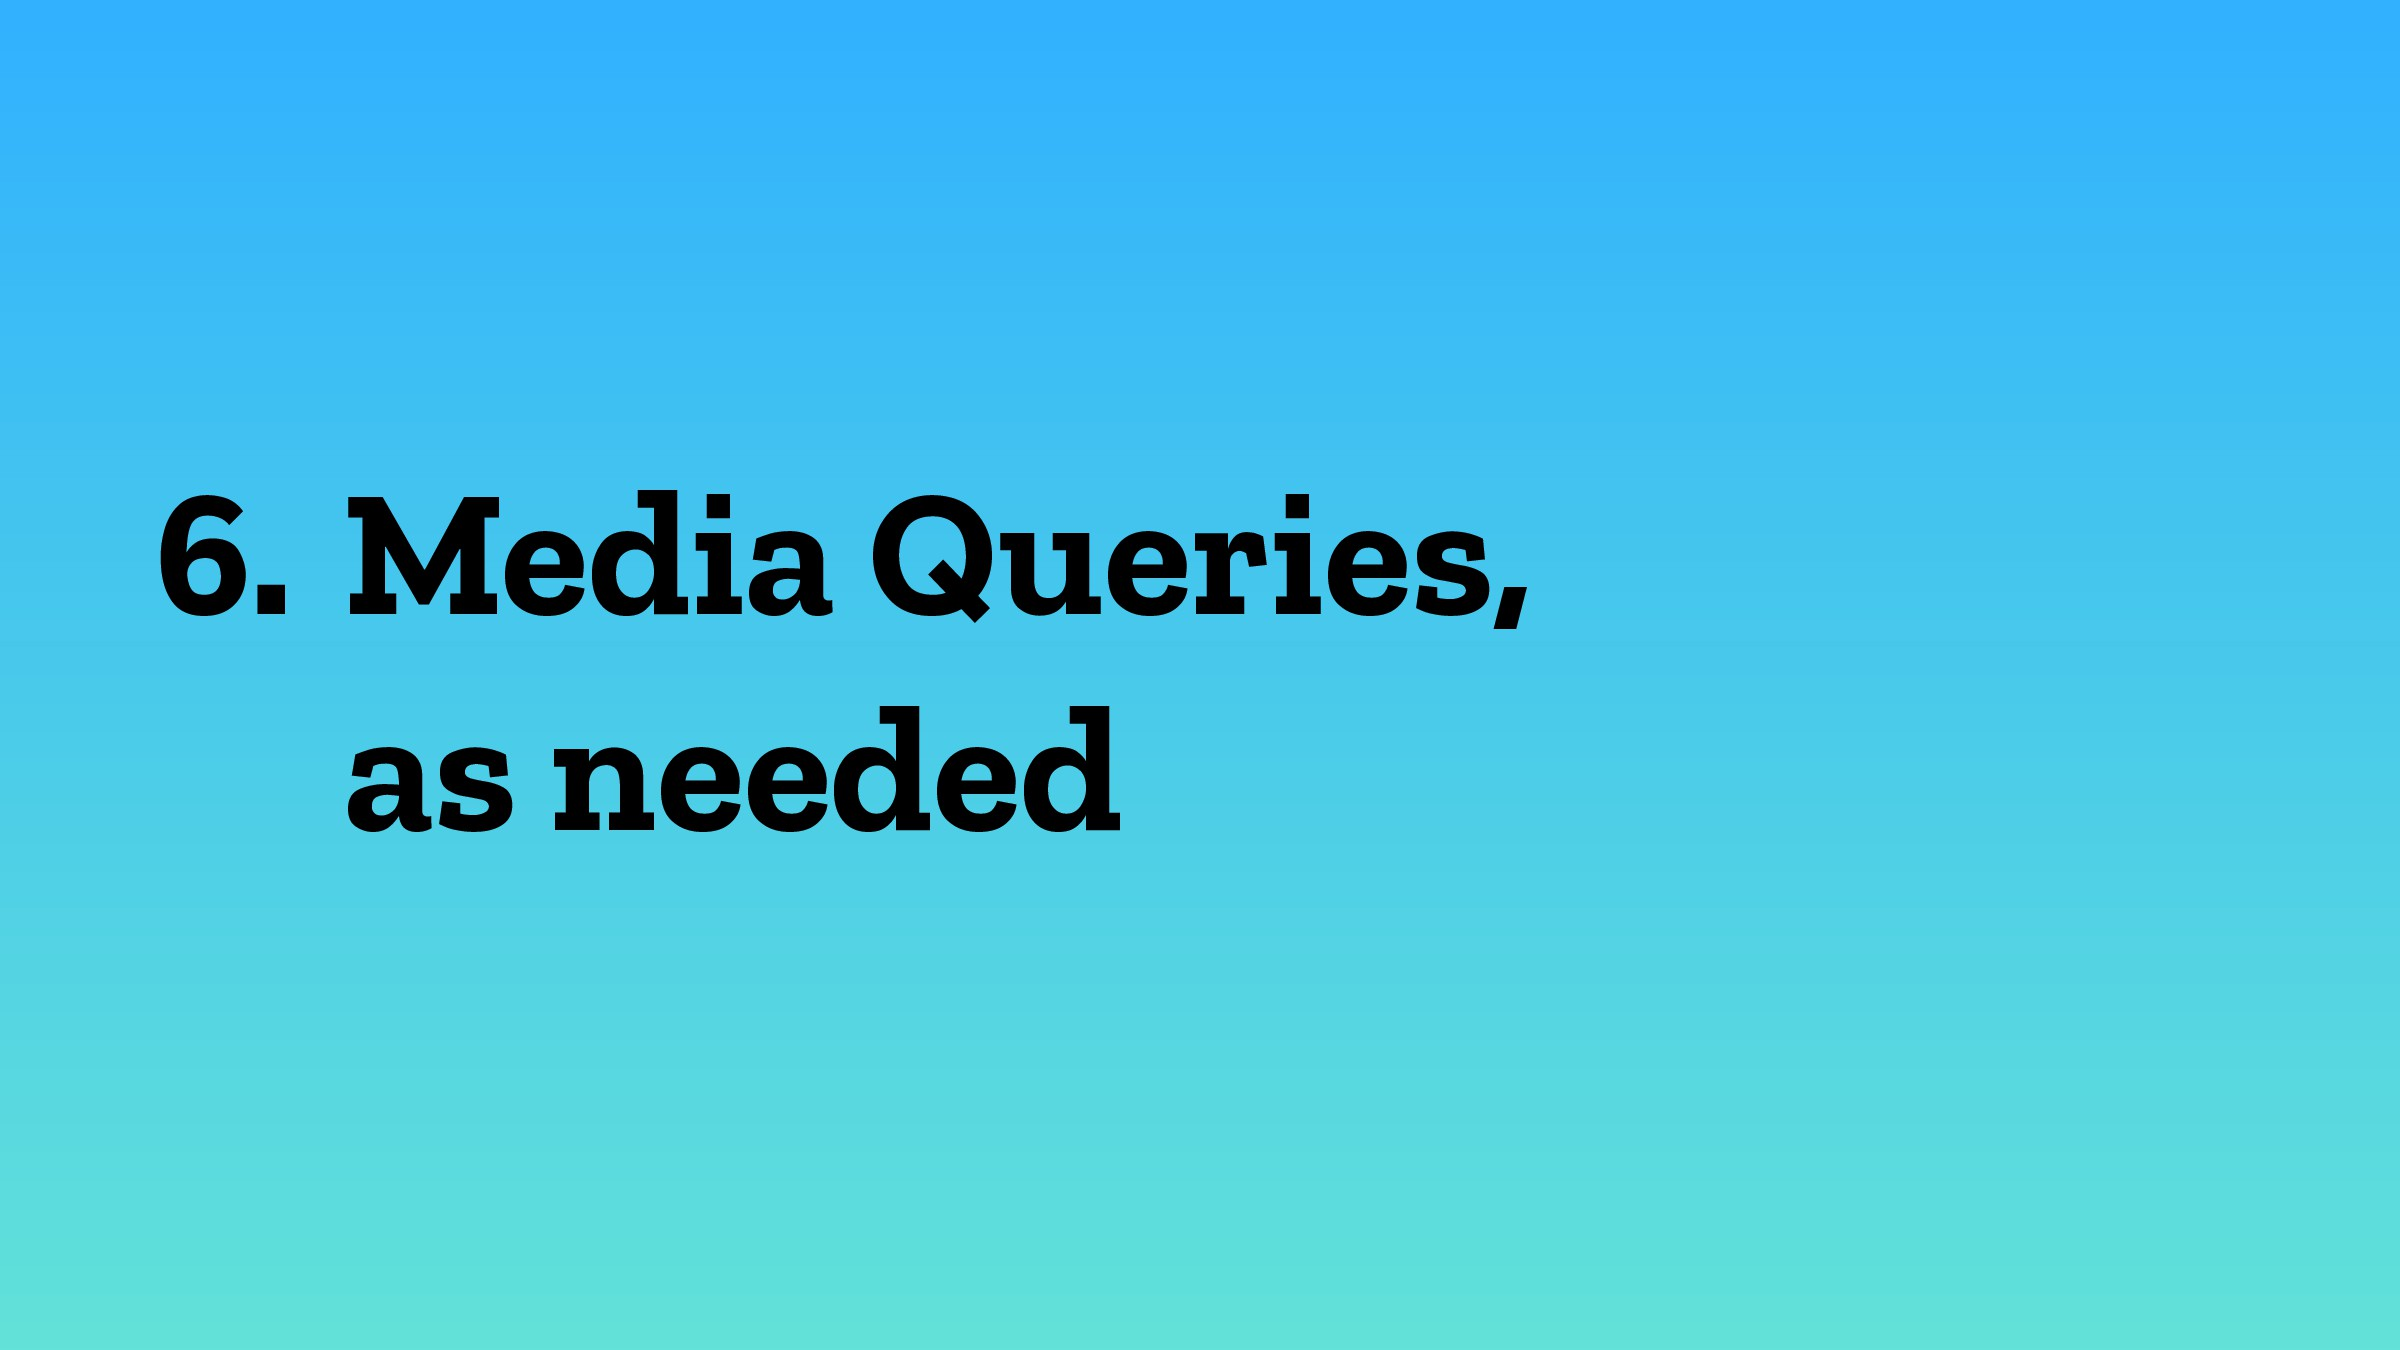 6. Media Queries, as needed